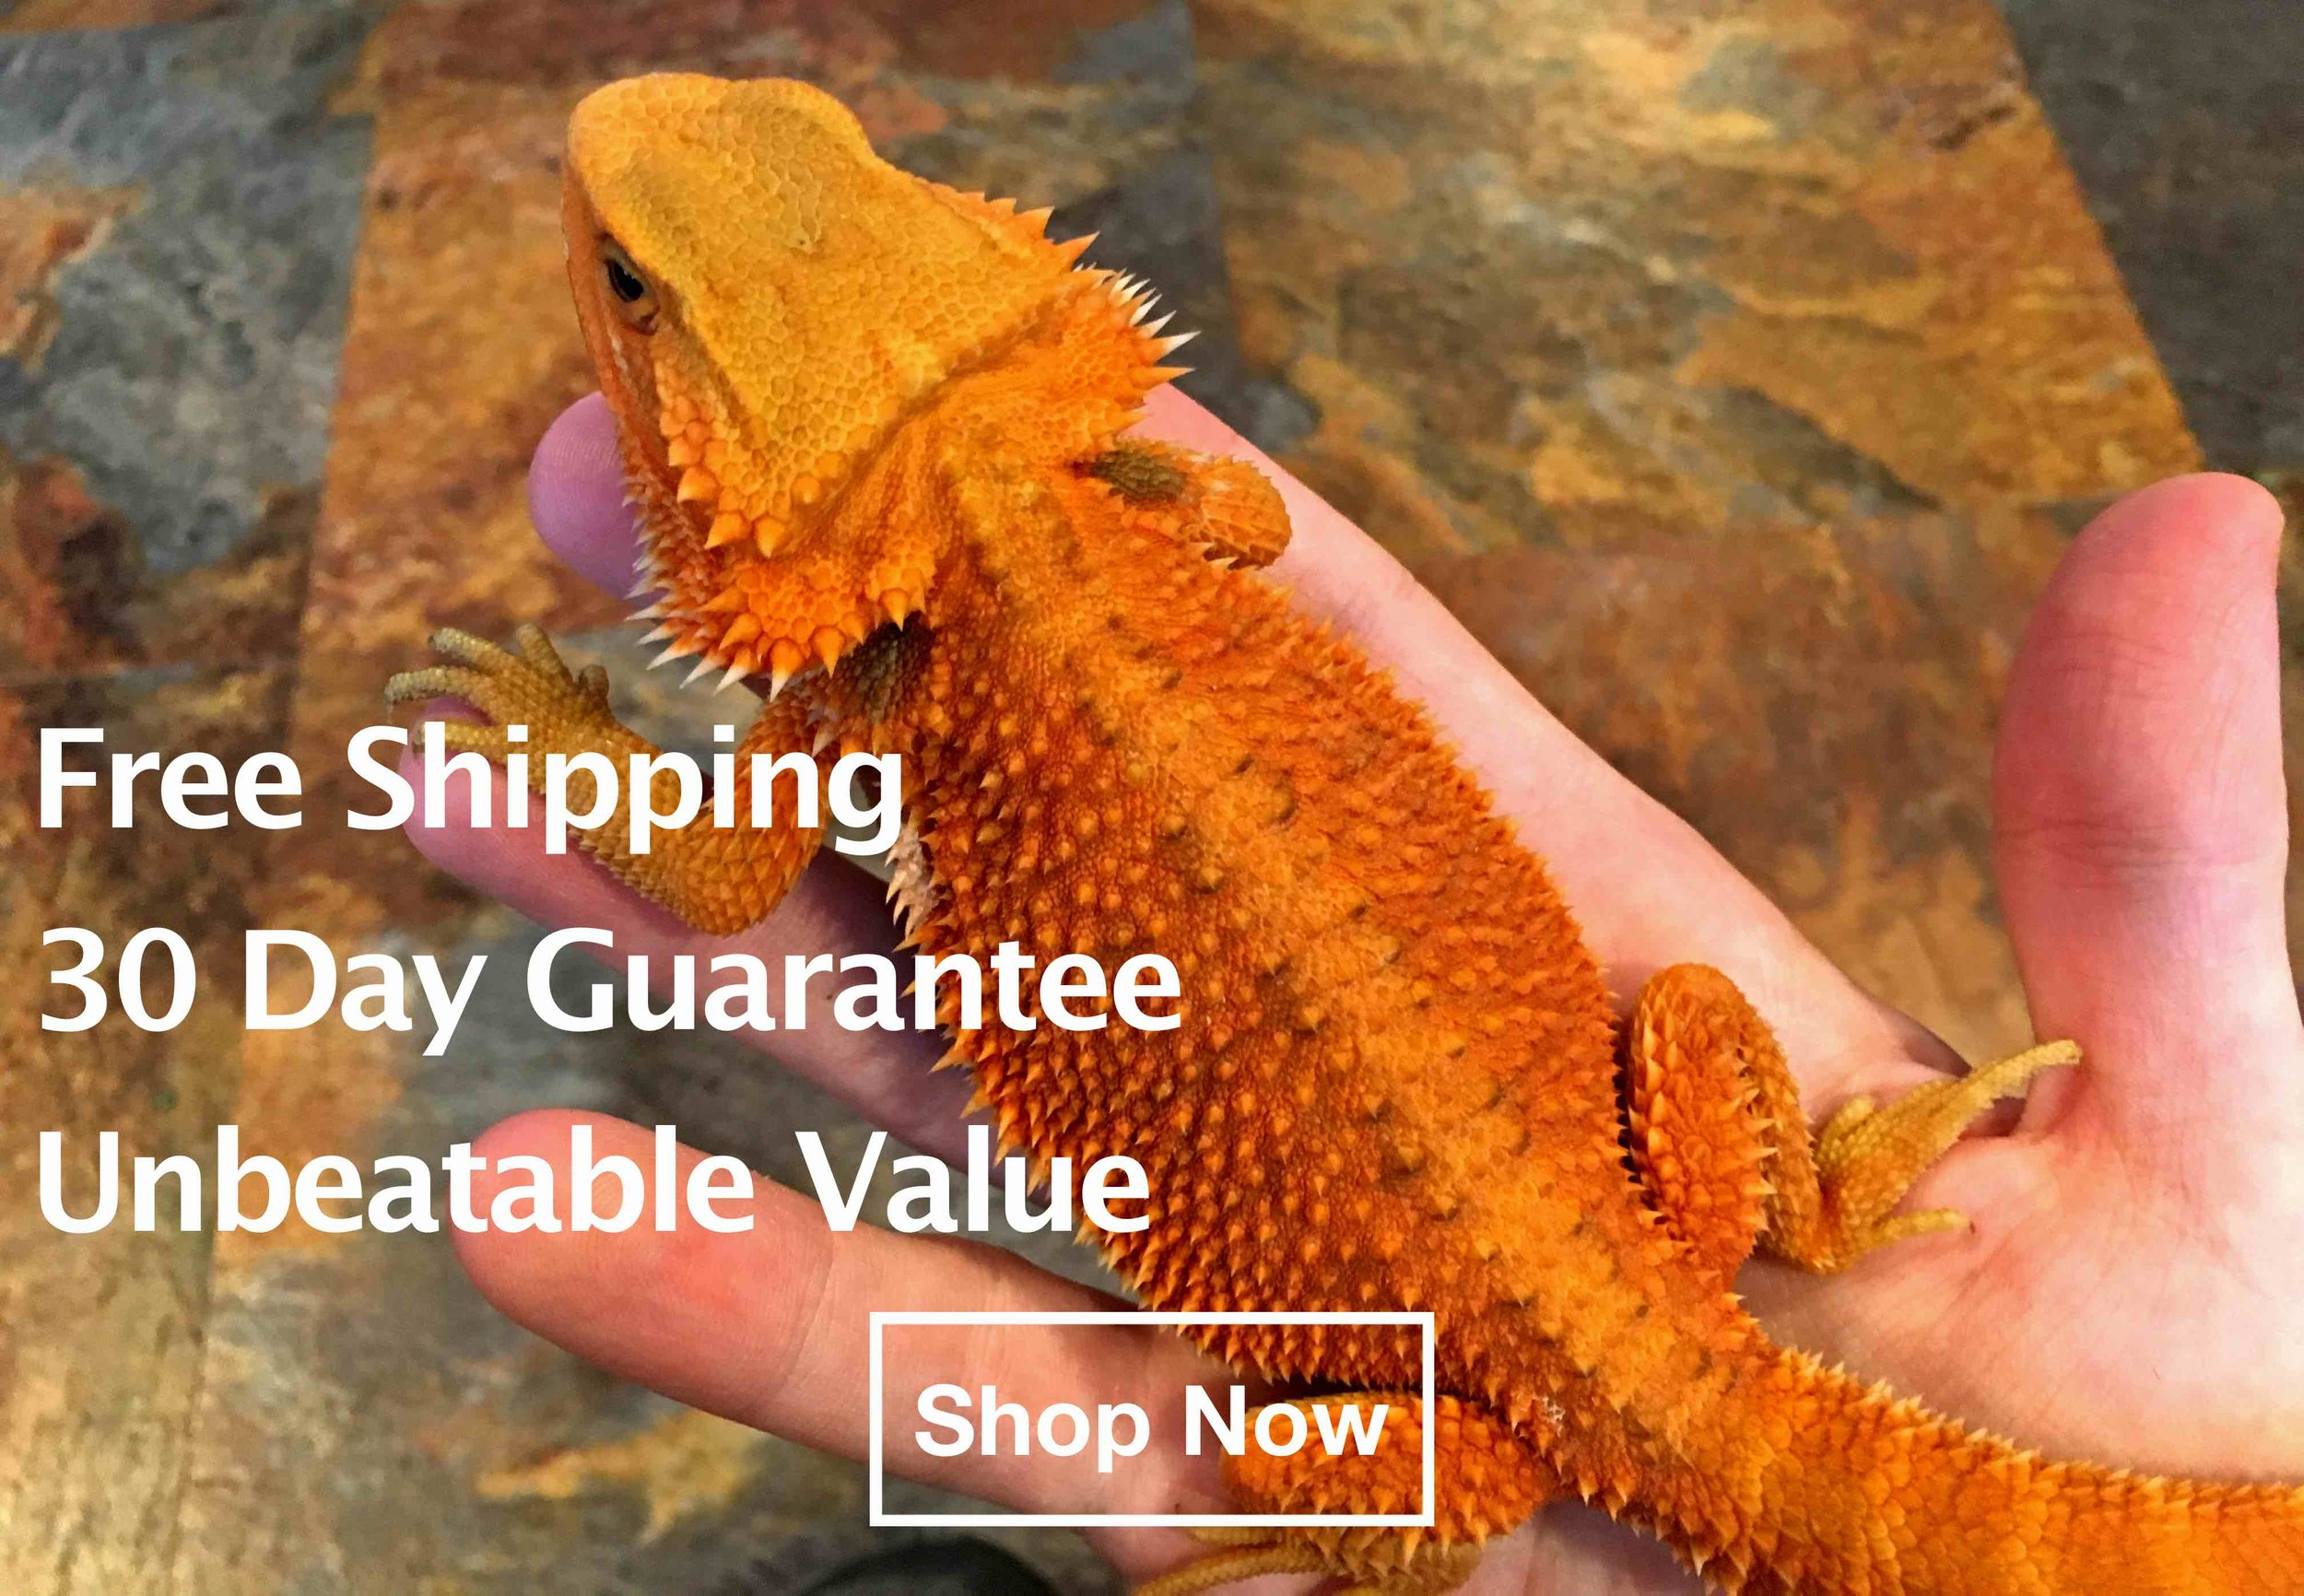 Bearded dragons for sale - blood red bearded dragon